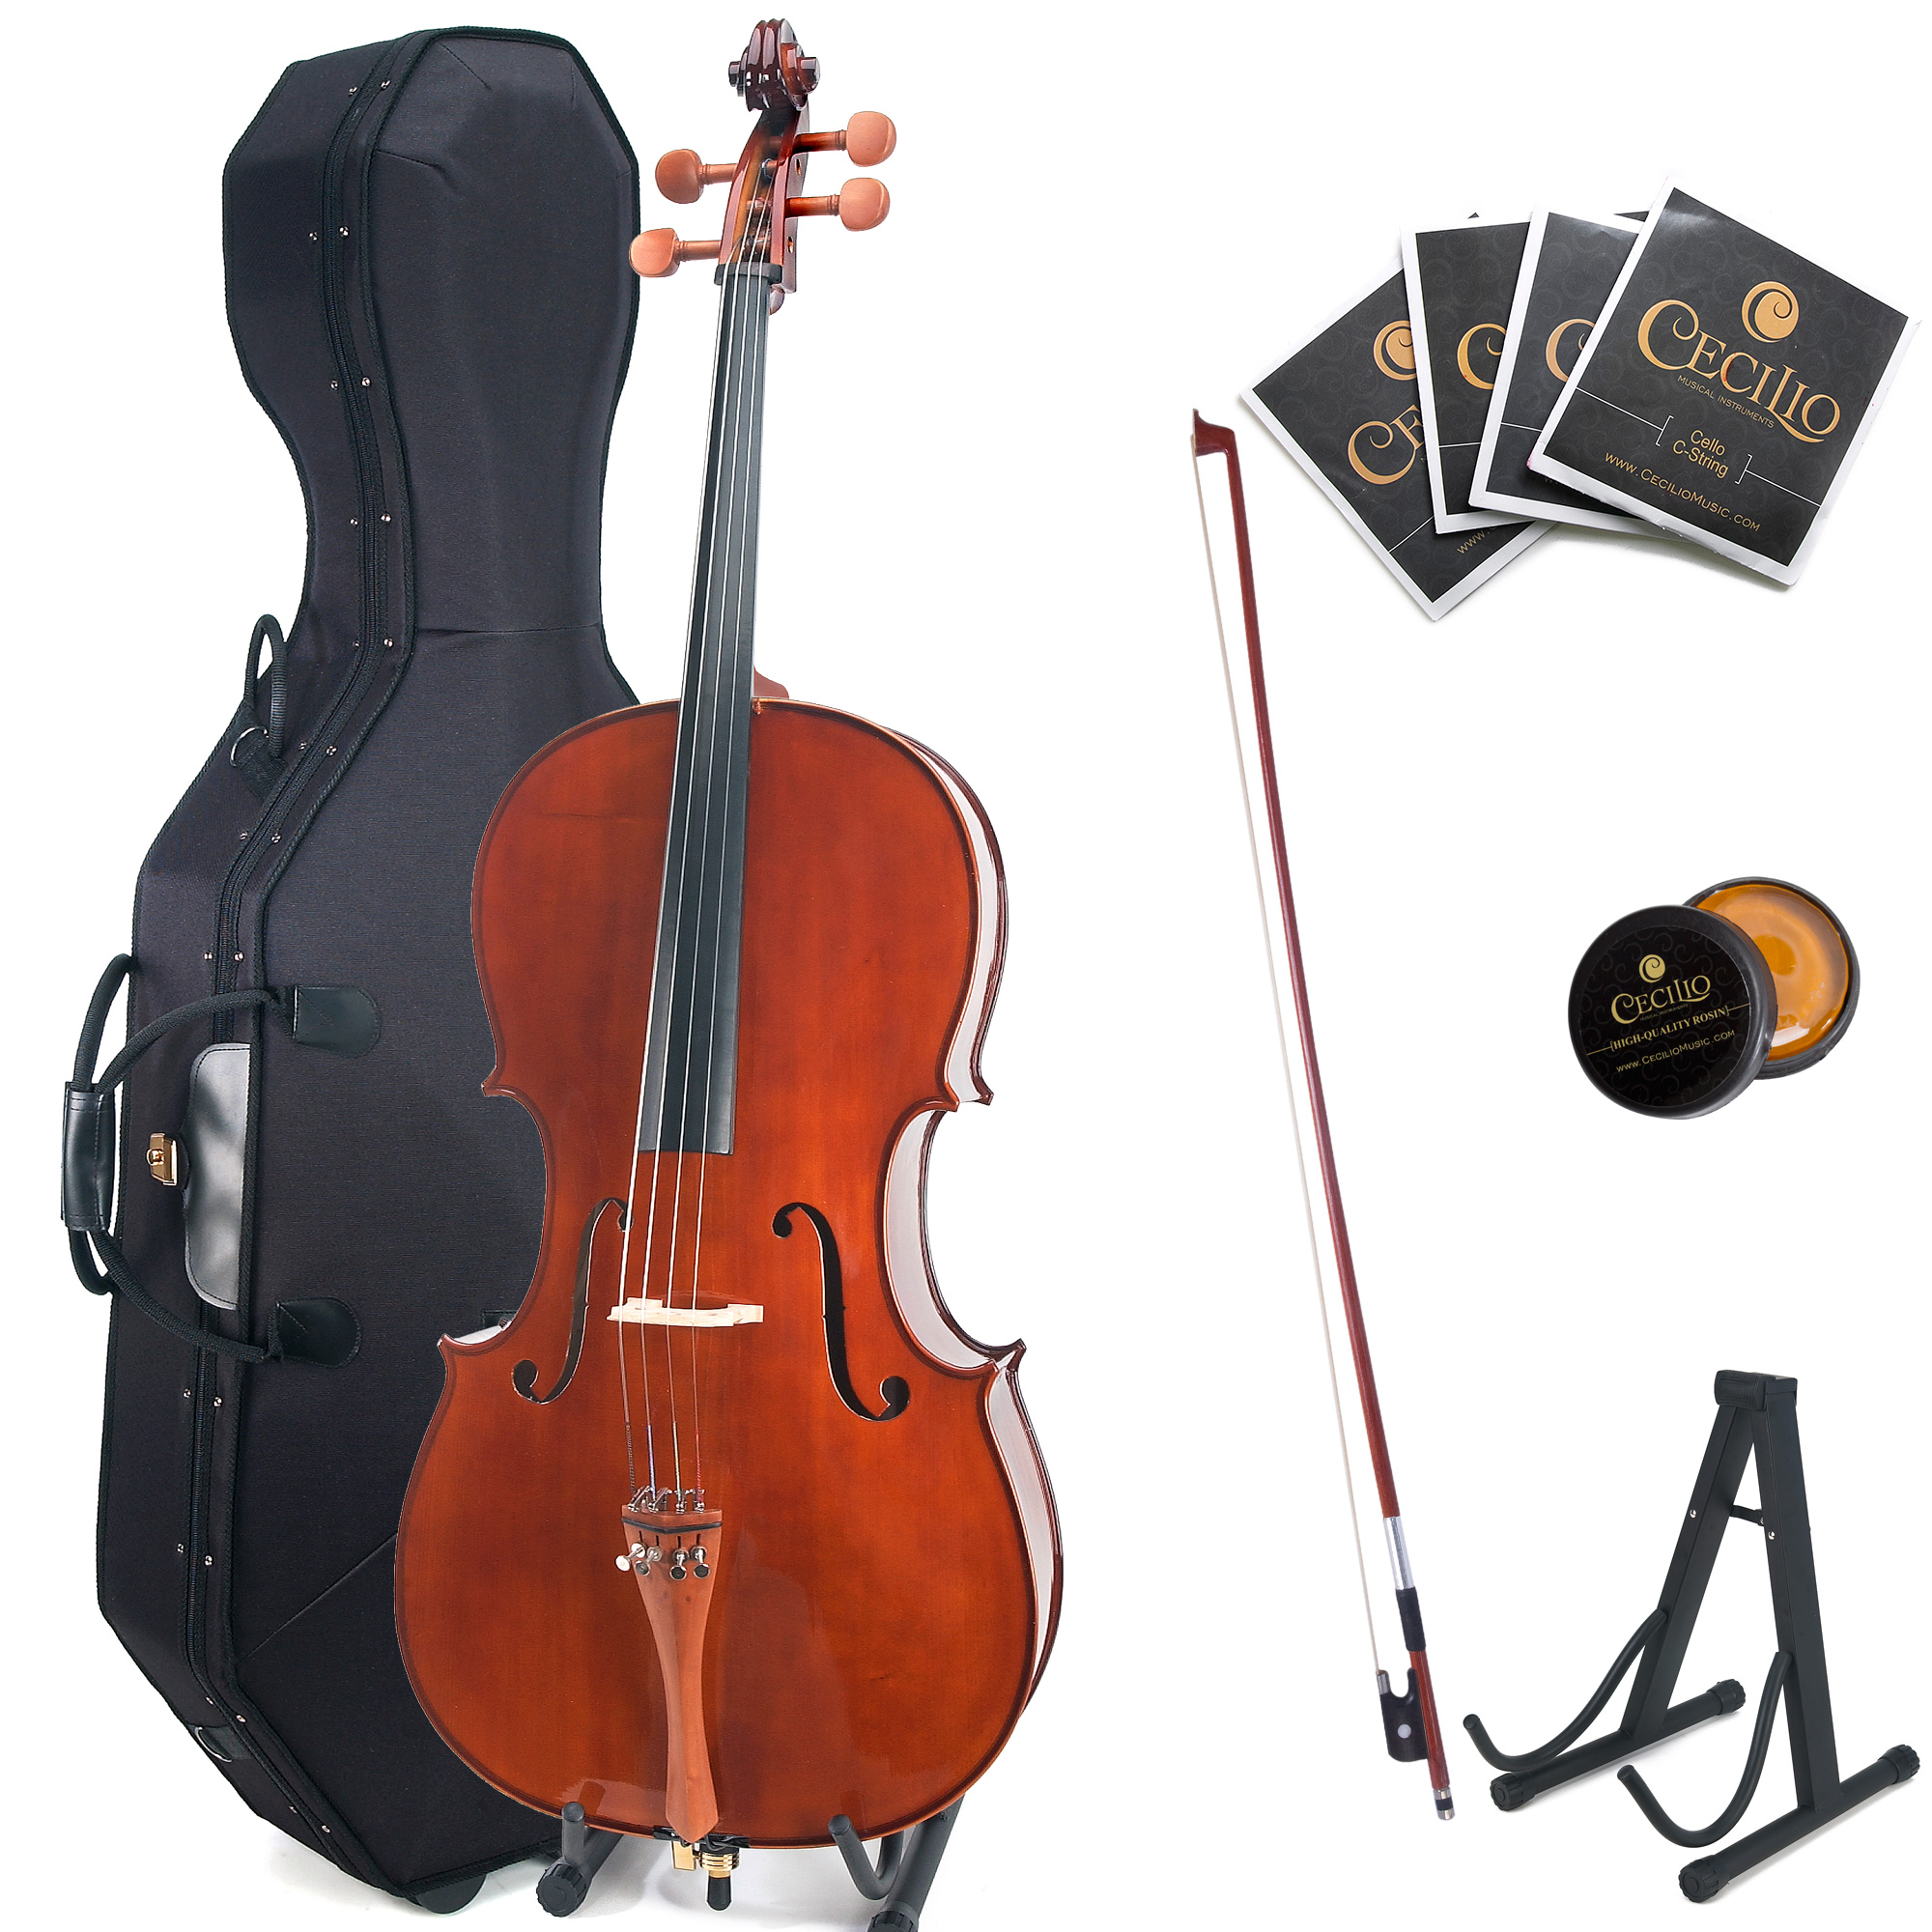 Cecilio 4/4 CCO-300 Solid Wood Cello with Hard and Soft Case, Stand, Extra Strings, Bow, Rosin and Bridge, Full Size 4/4